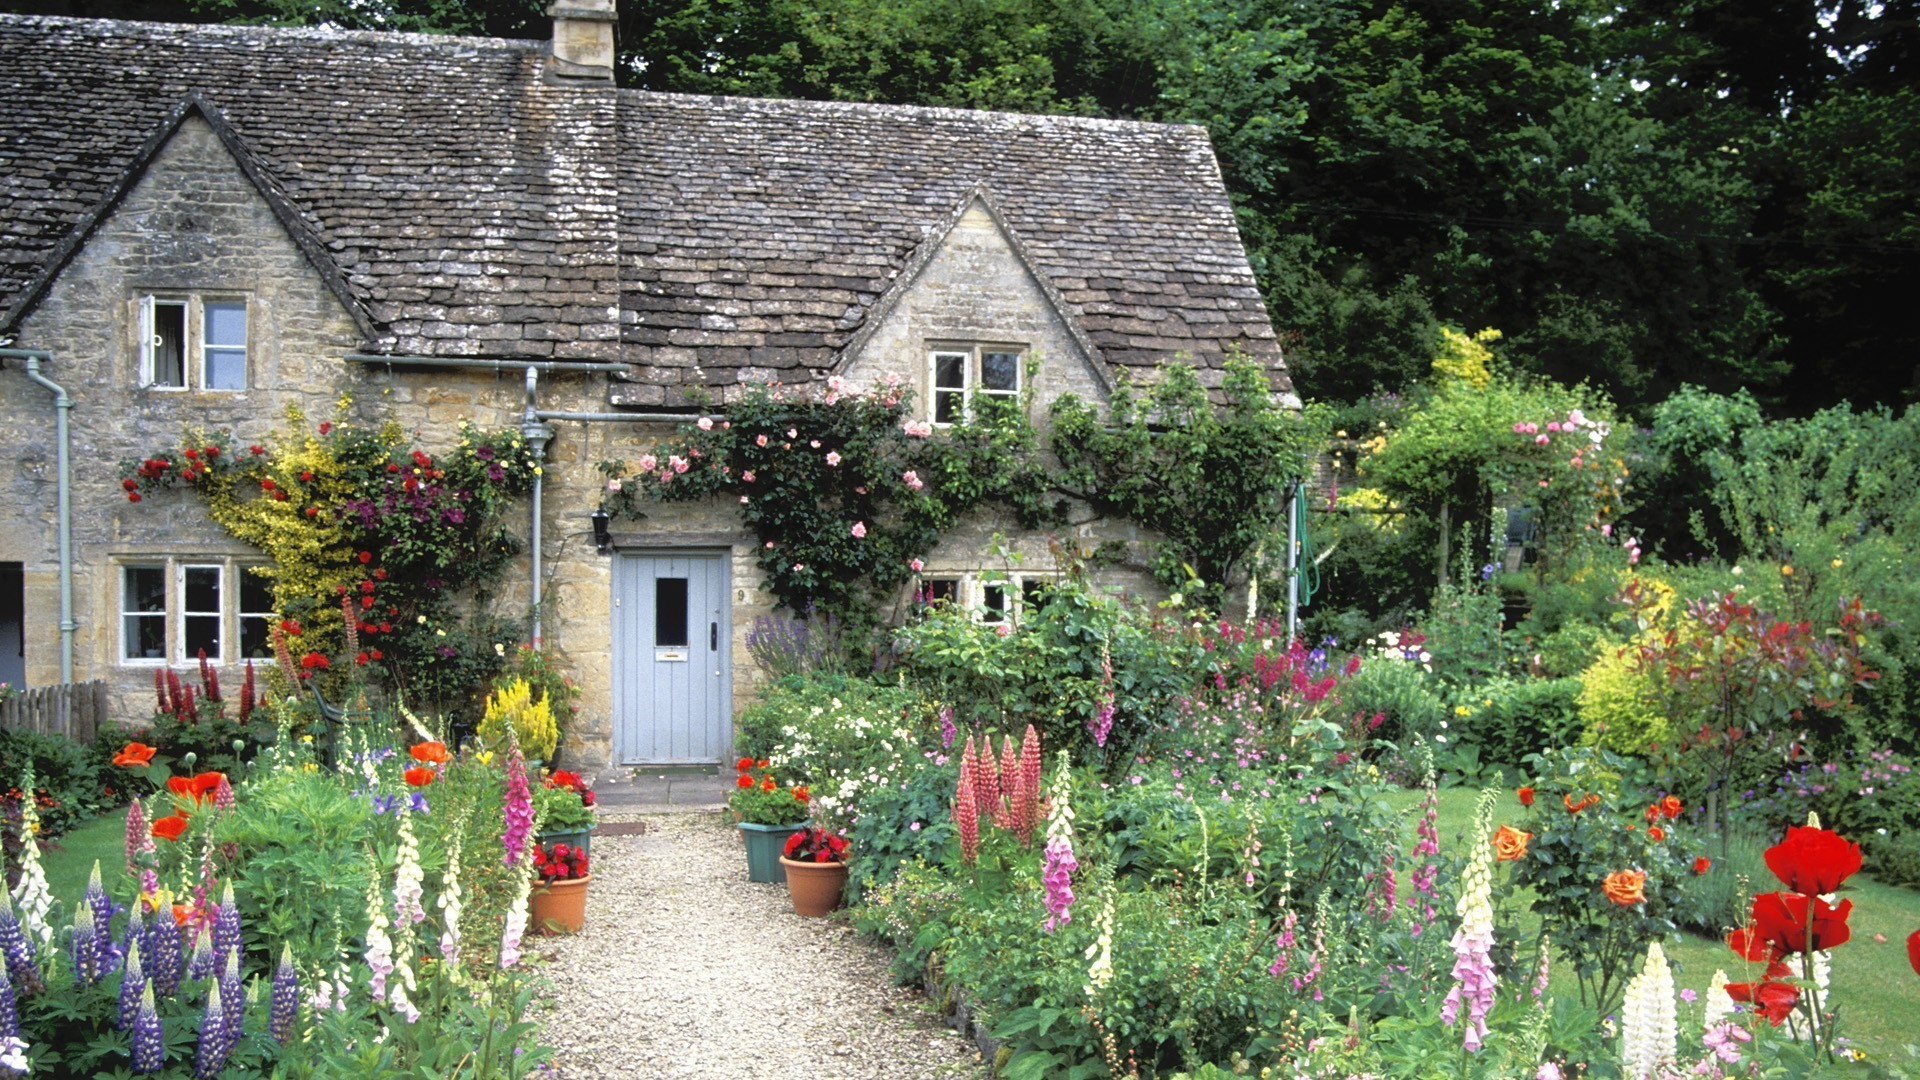 England cottage garden wallpaper 8115 for Wallpaper home and garden